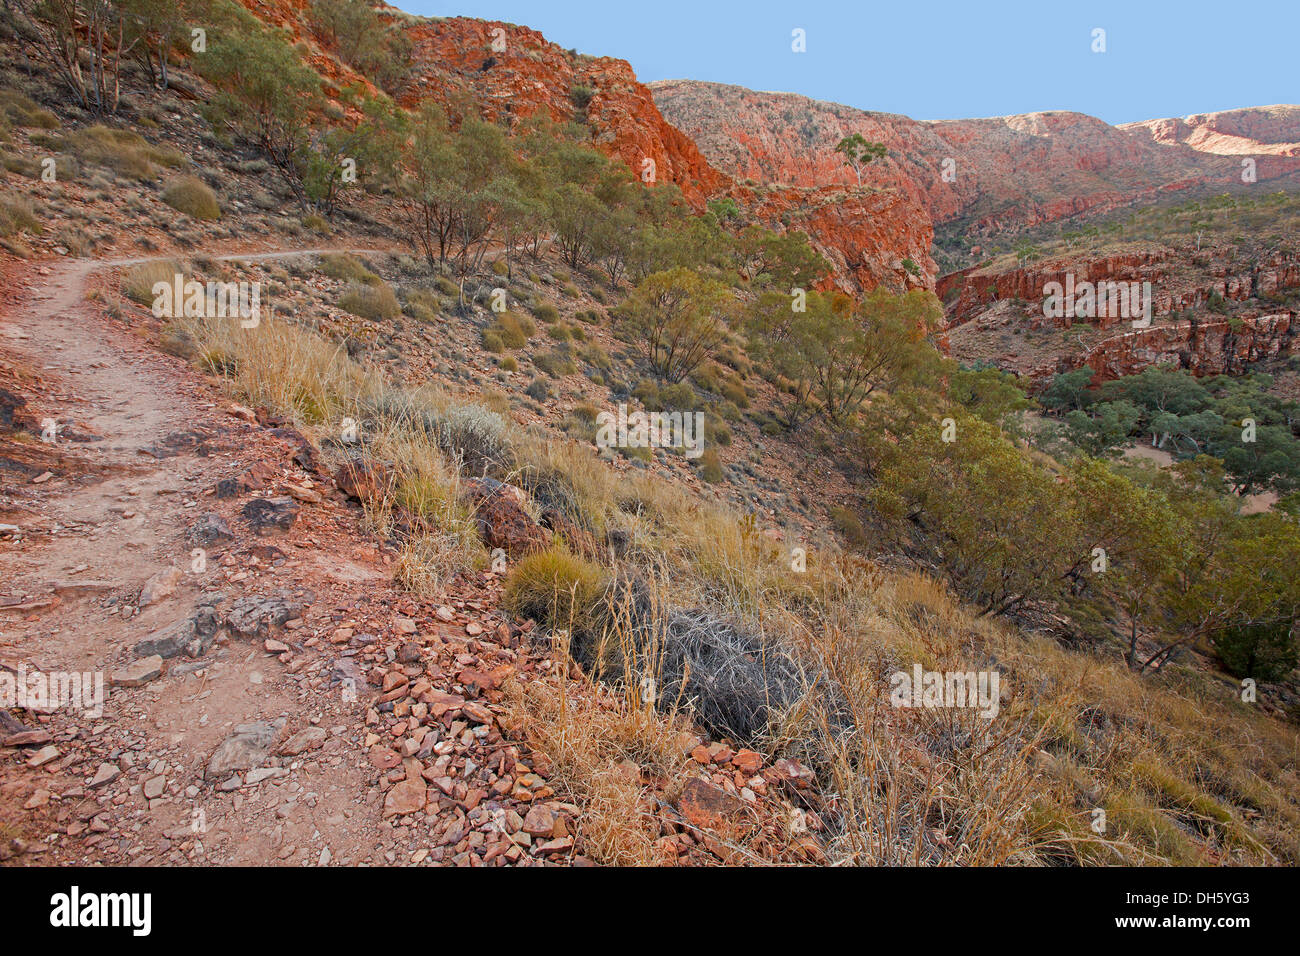 Australian outback landscape with pathway across rugged red rocky hills at Ormiston Gorge reserve near Alice Springs NT - Stock Image